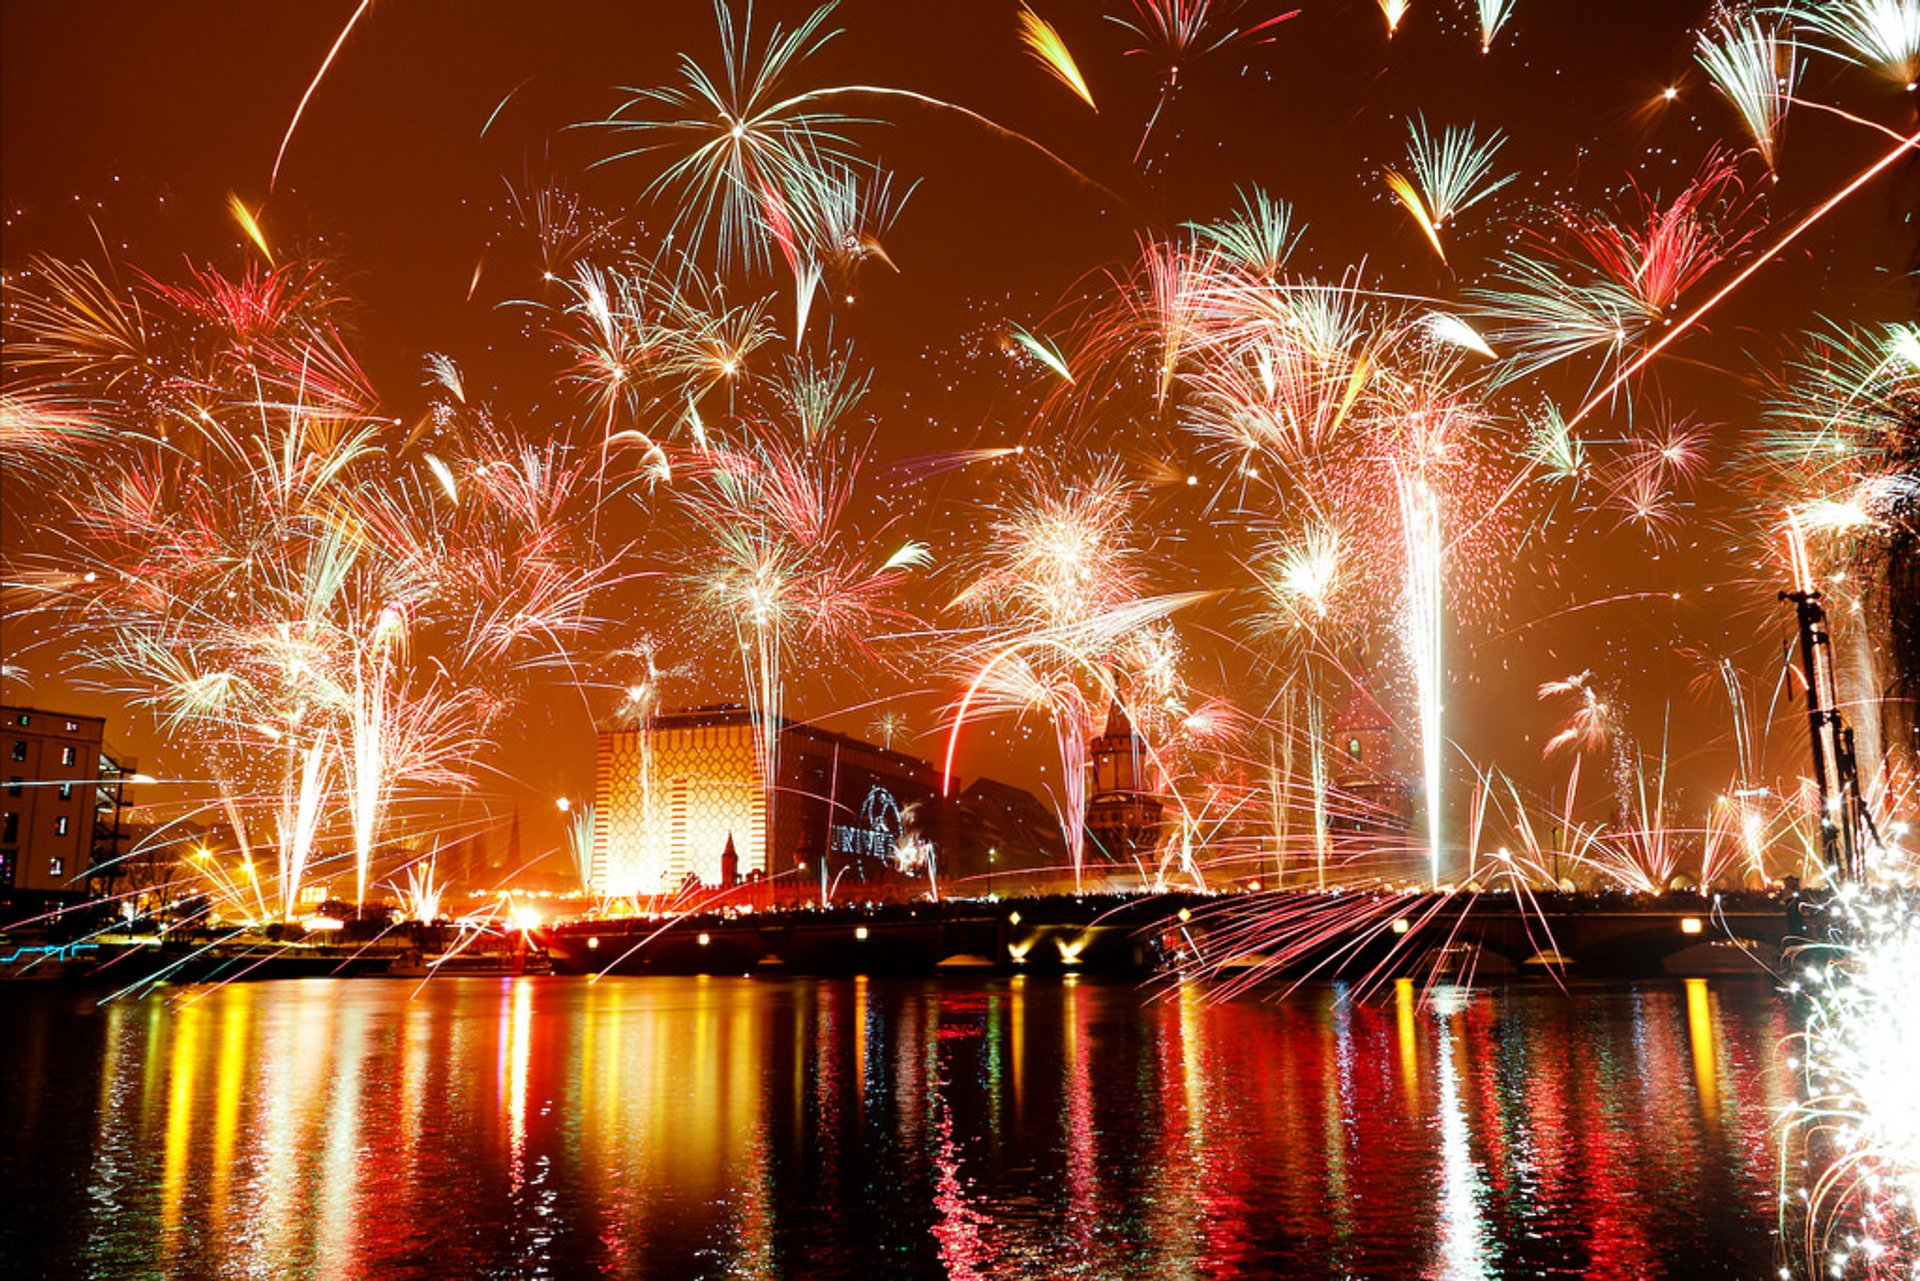 New Year's fireworks with a view over the Oberbaumbrücke. The photo is a superposition of three long exposures every 20 seconds. 2020